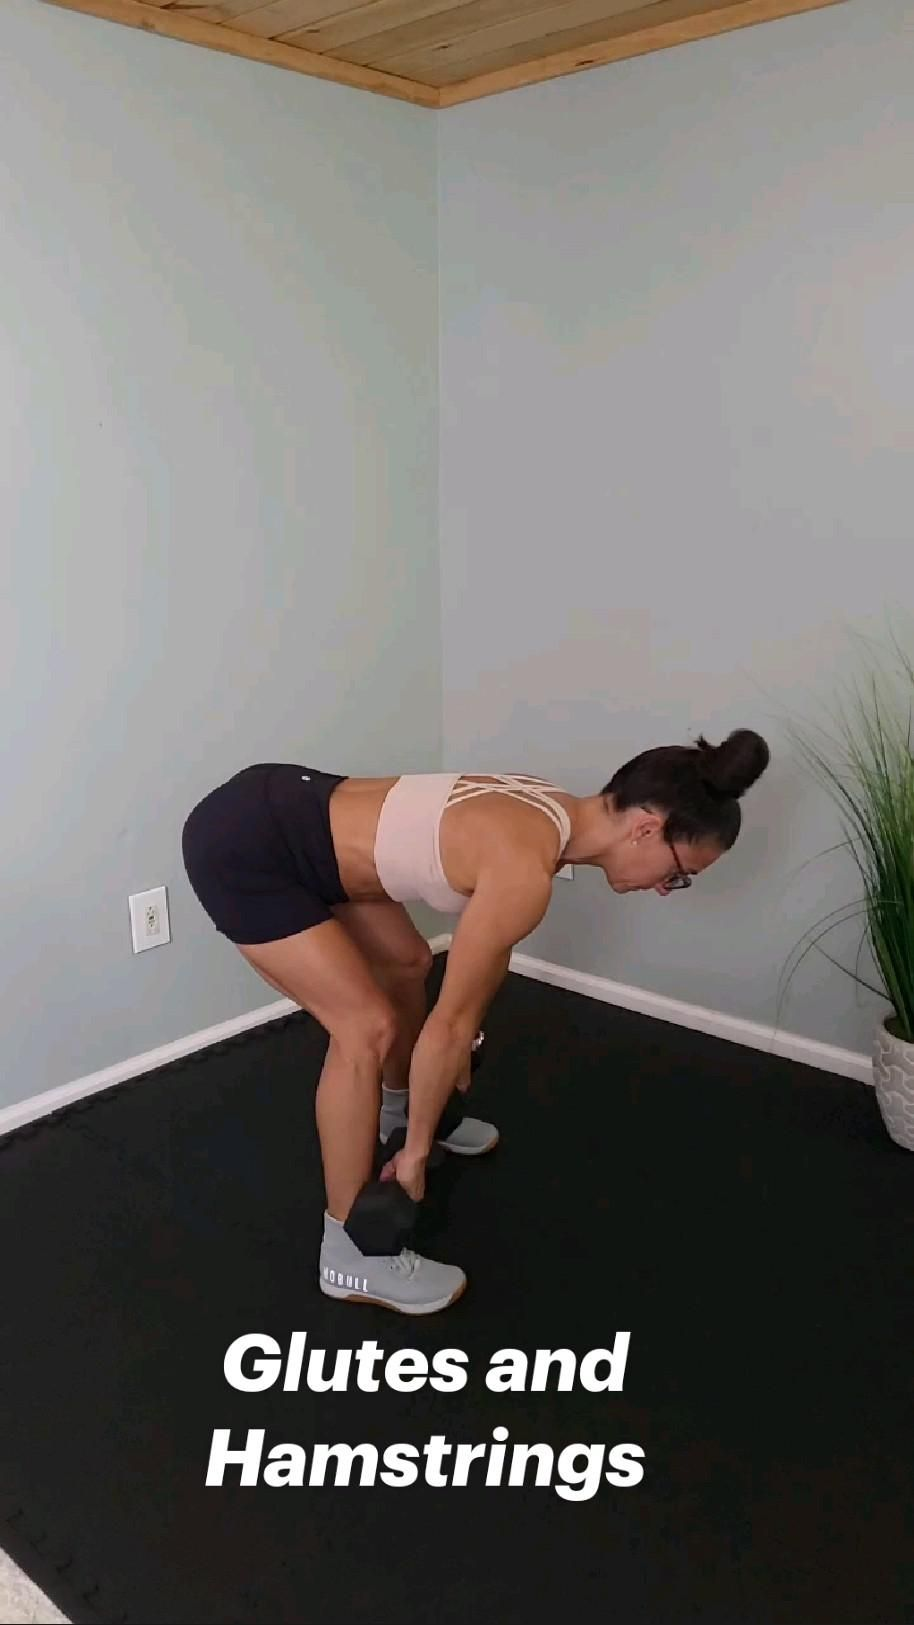 Lower Body Workout with weights to build strength and muscle in your glutes and hamstrings